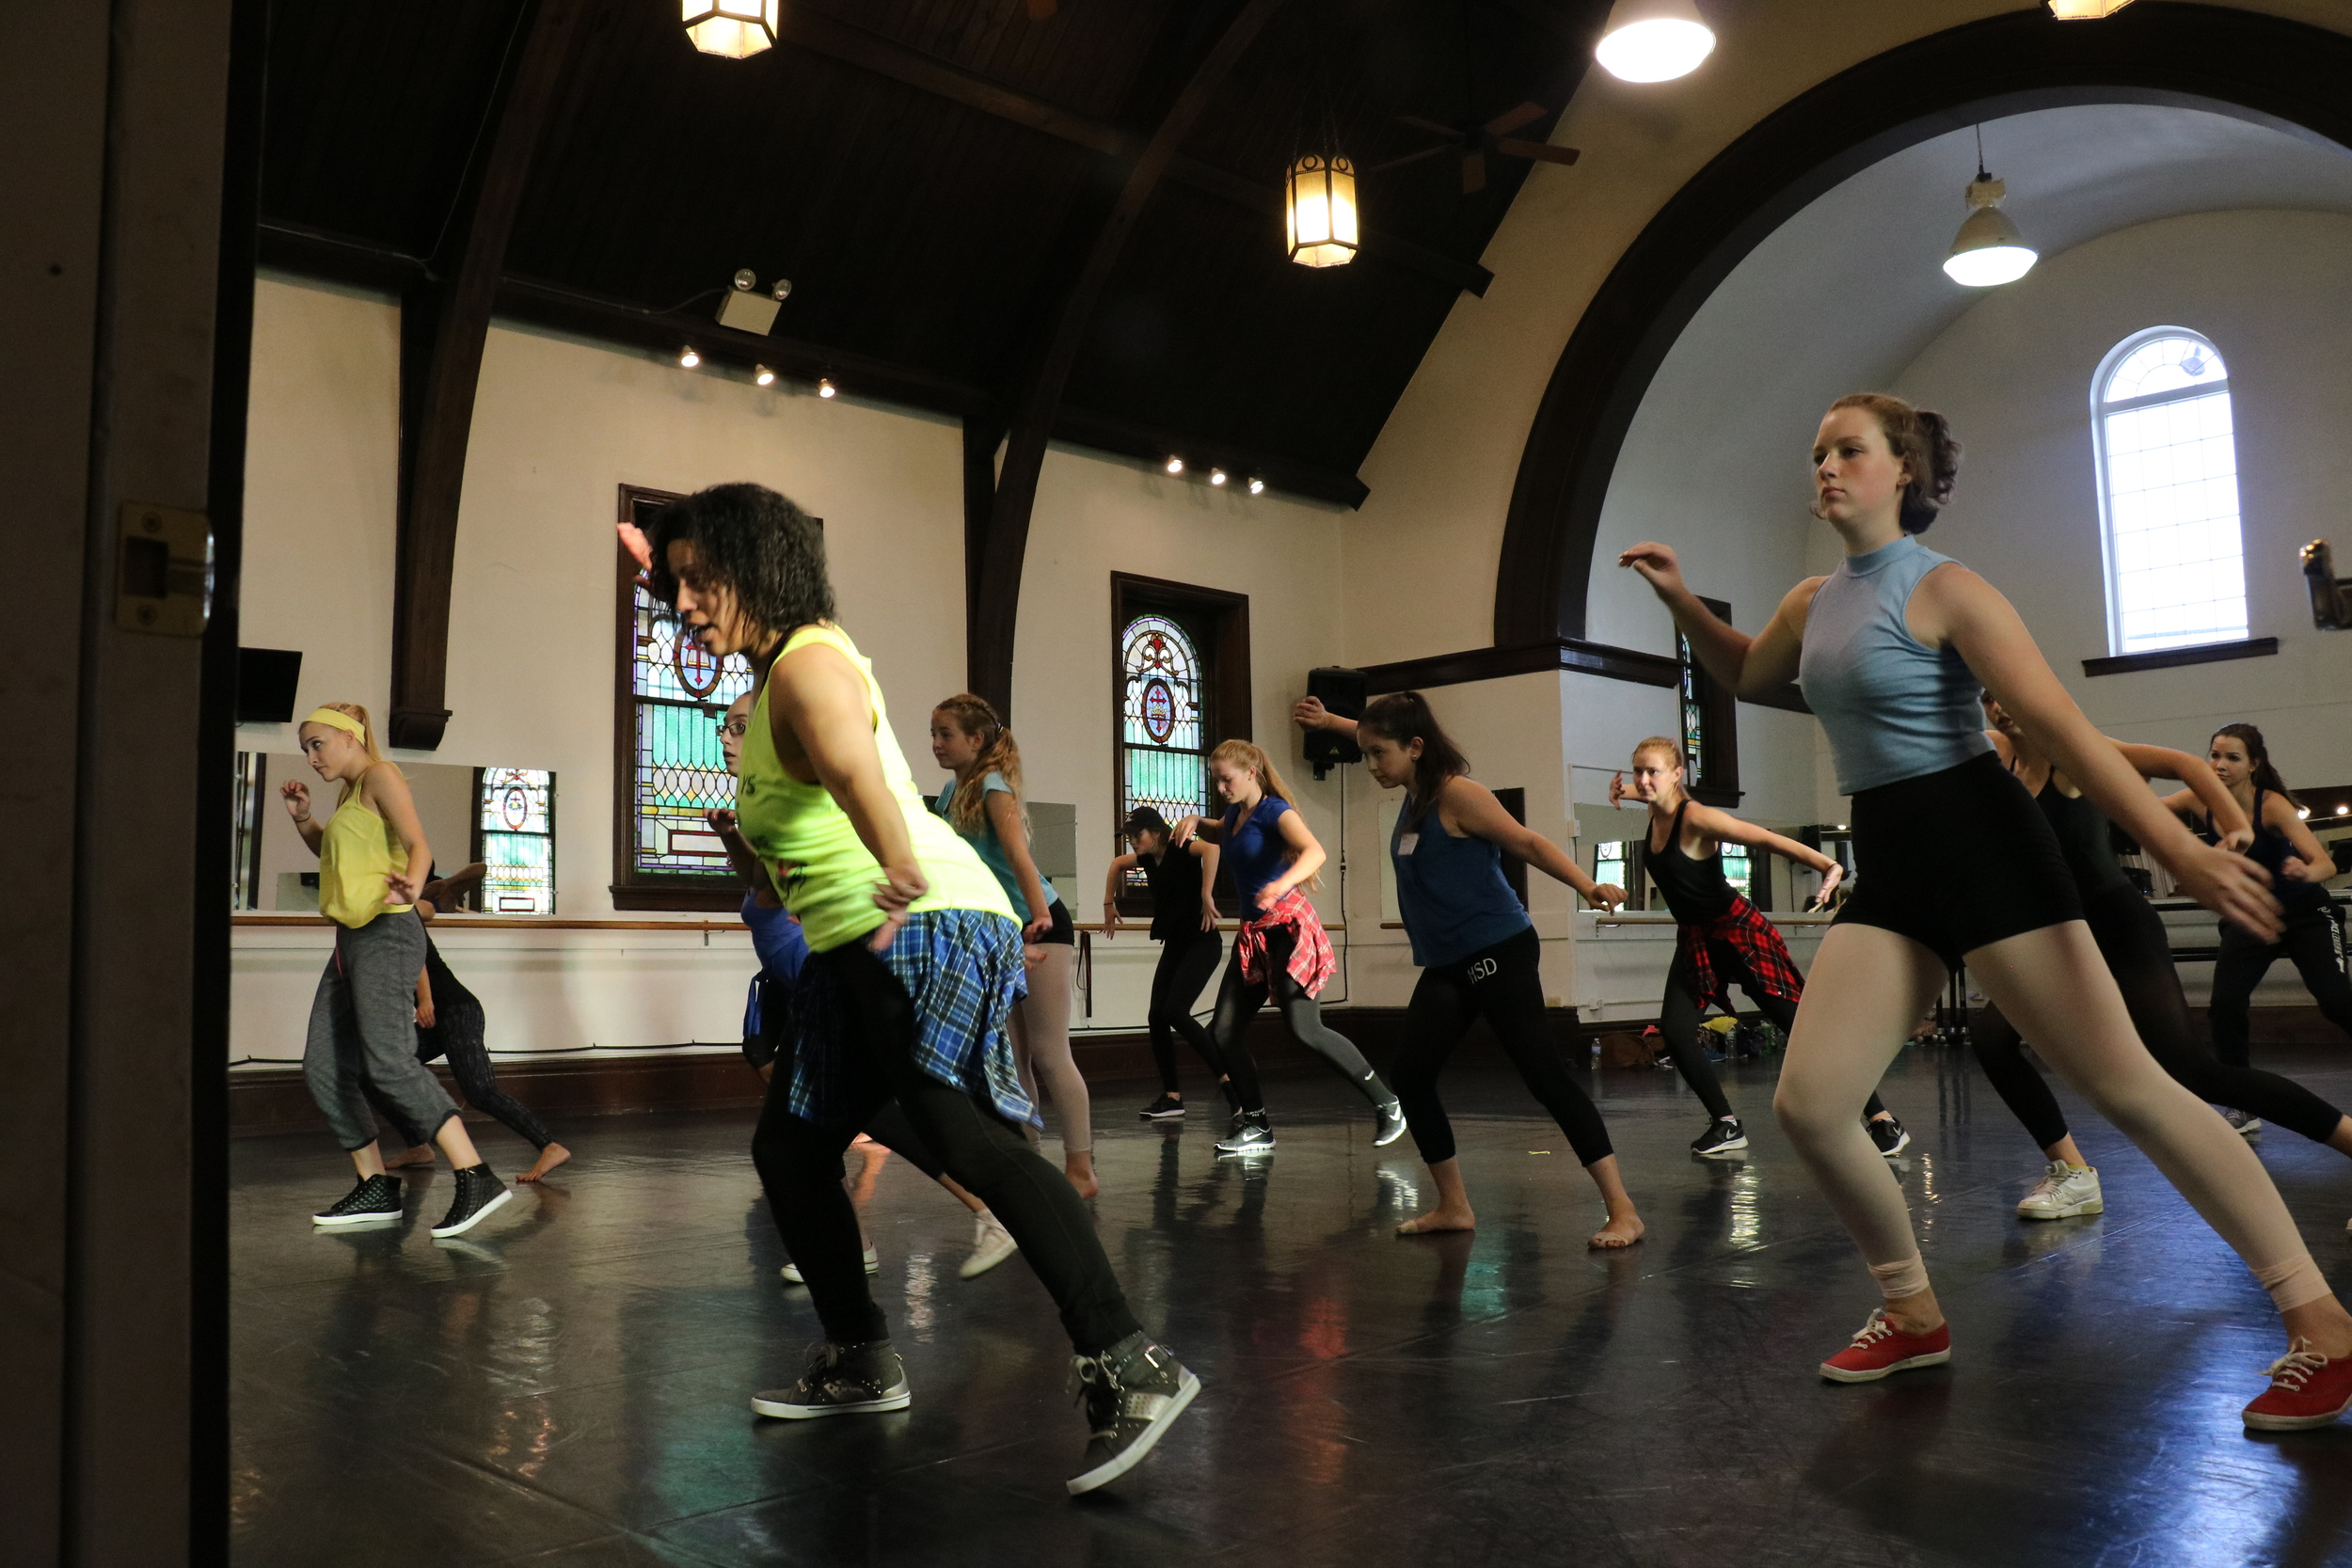 Kristen Murray teaching at 2015 Day of Dance for Cystic Fibrosis at Pennsylvania Regional Ballet